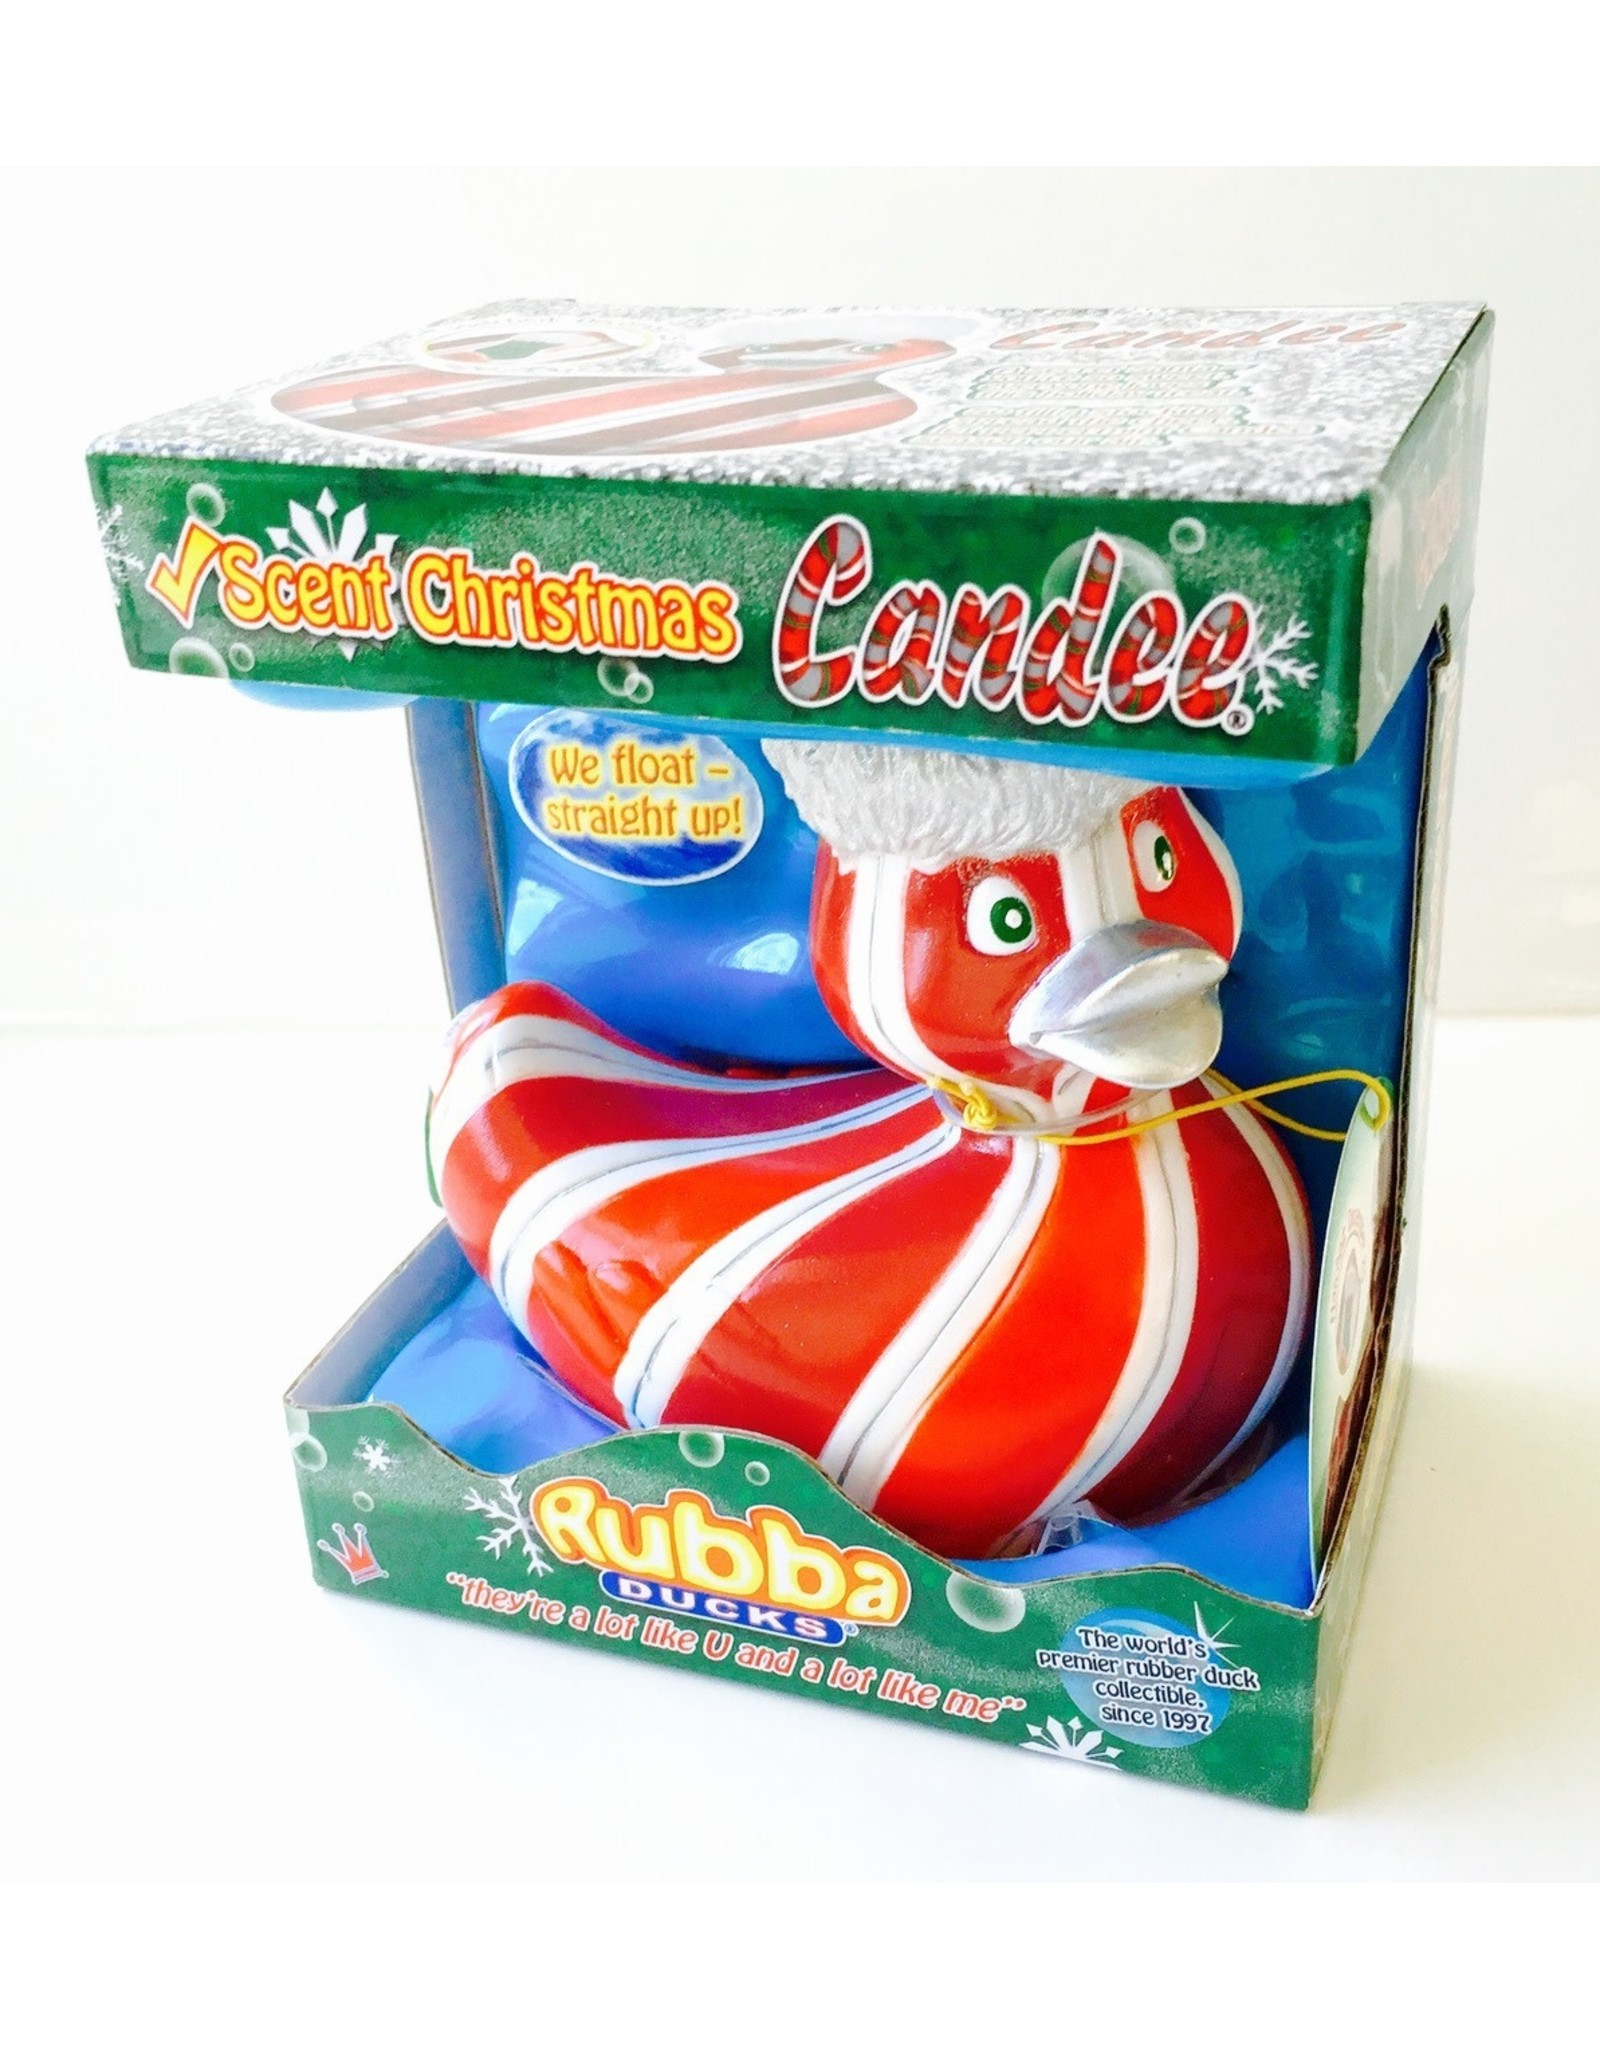 Candee - CandyCane Rubber Duck